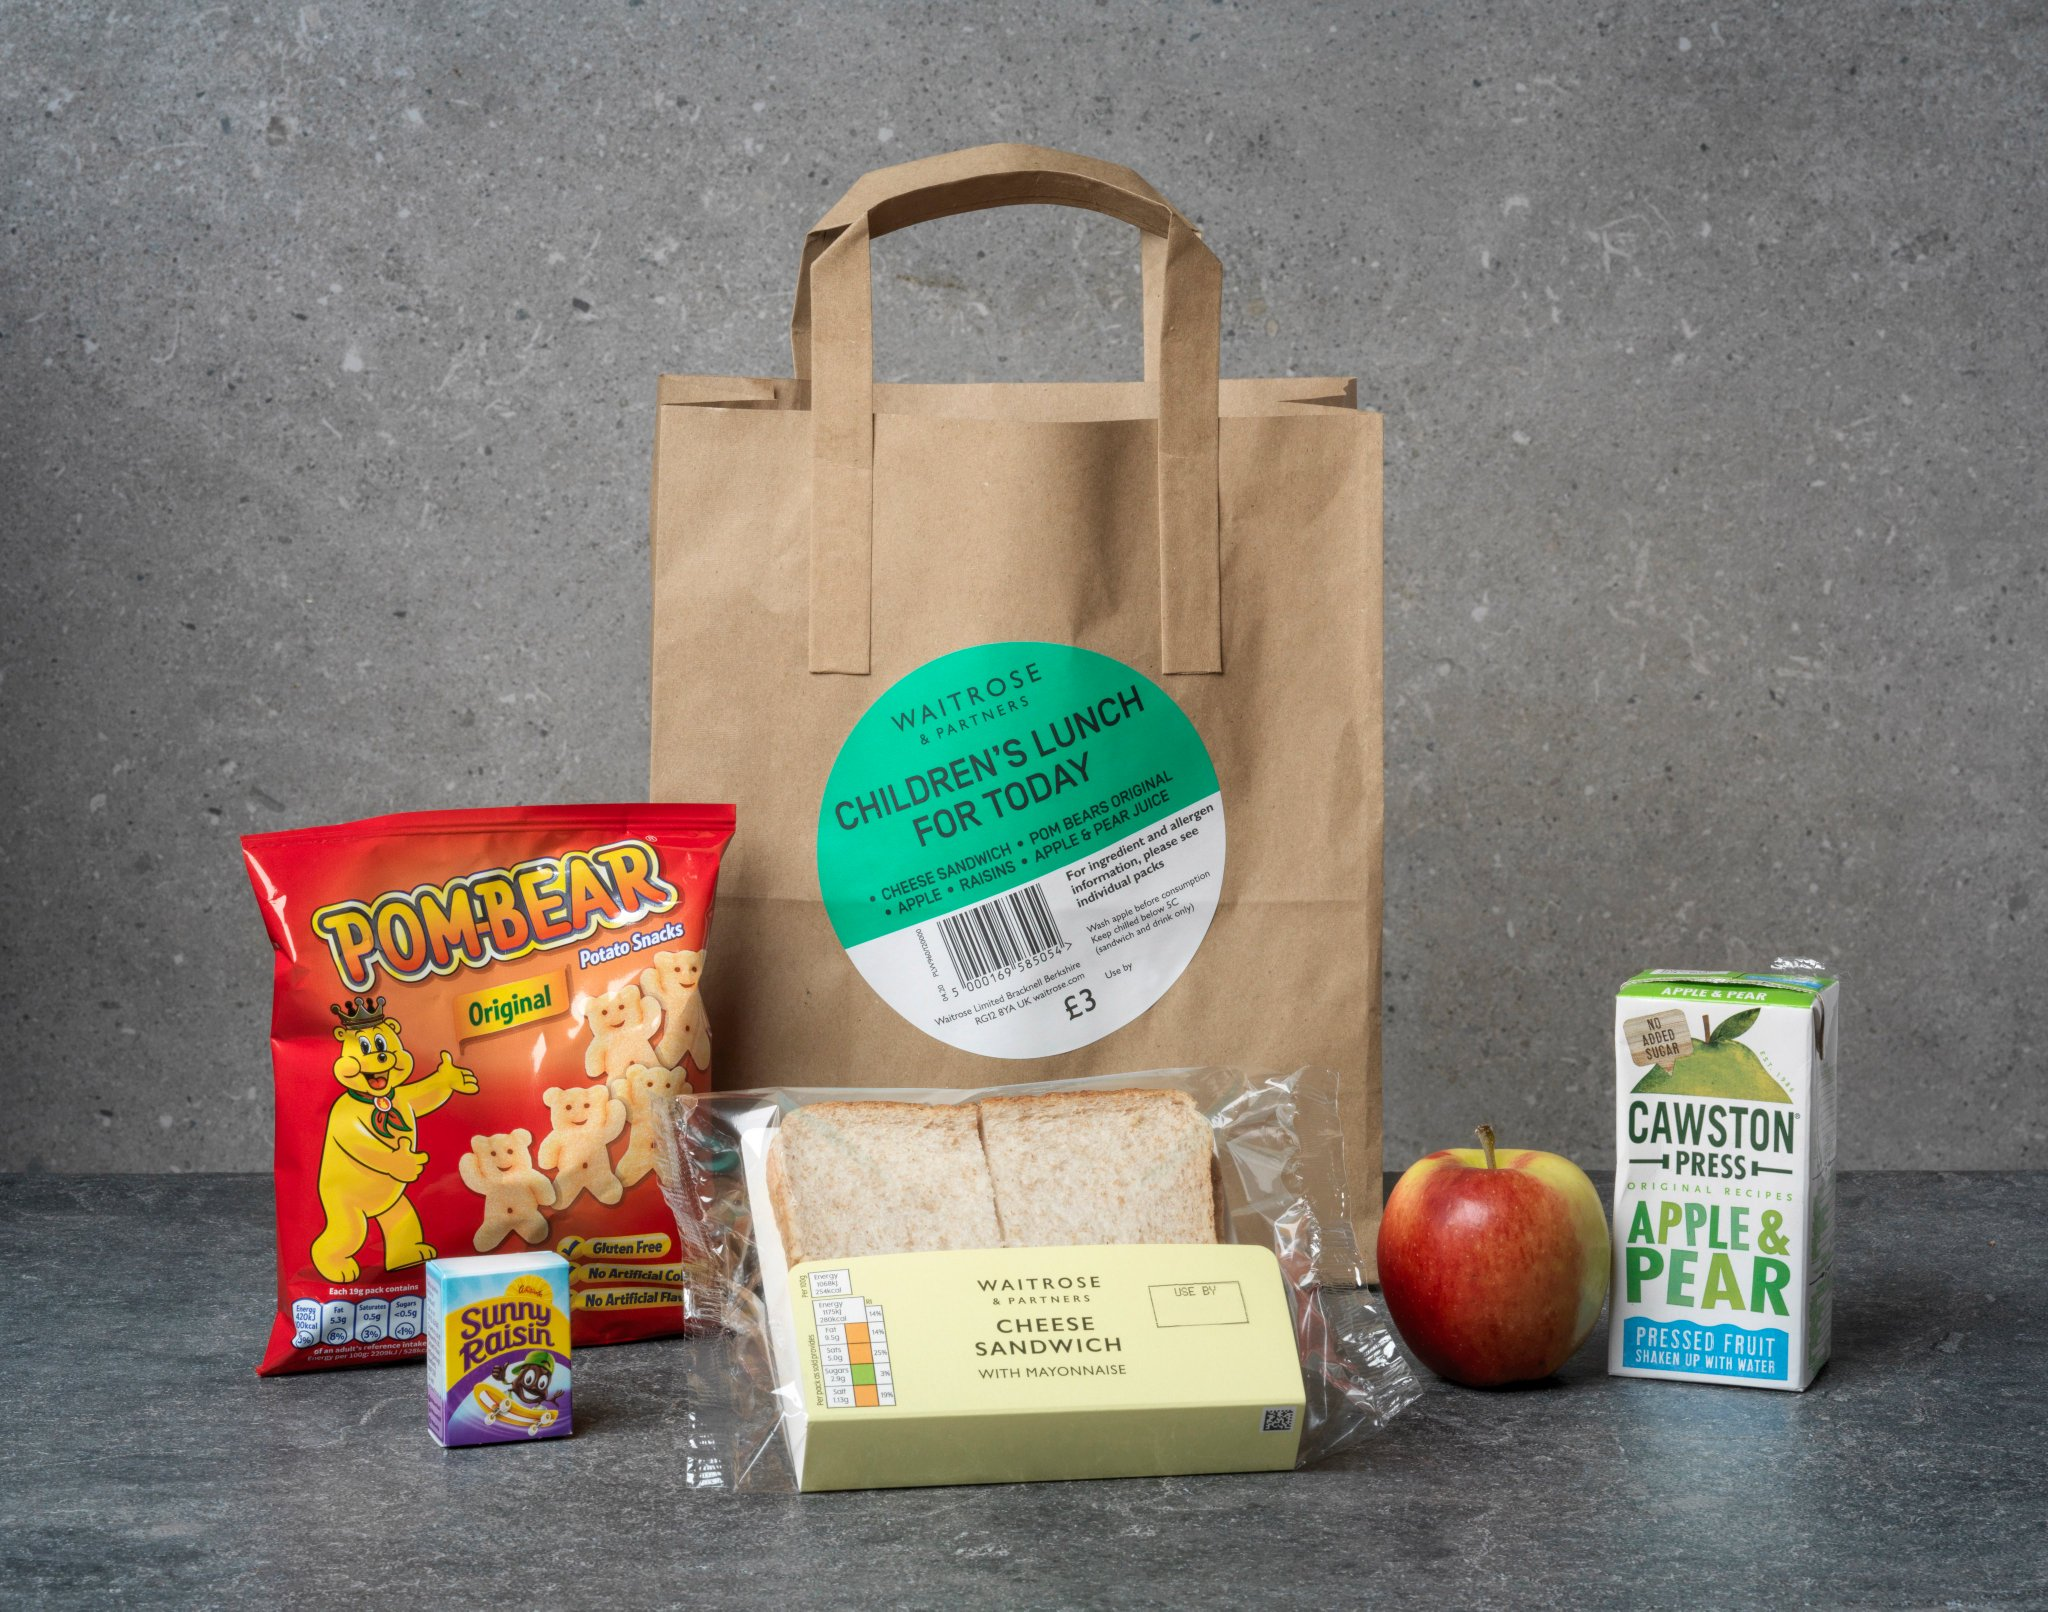 Waitrose Partners On Twitter Introducing Our New Lunch For Today Bags 5 For Adults And 3 For Kids They Contain All You Need For A Quick And Easy Grab And Go